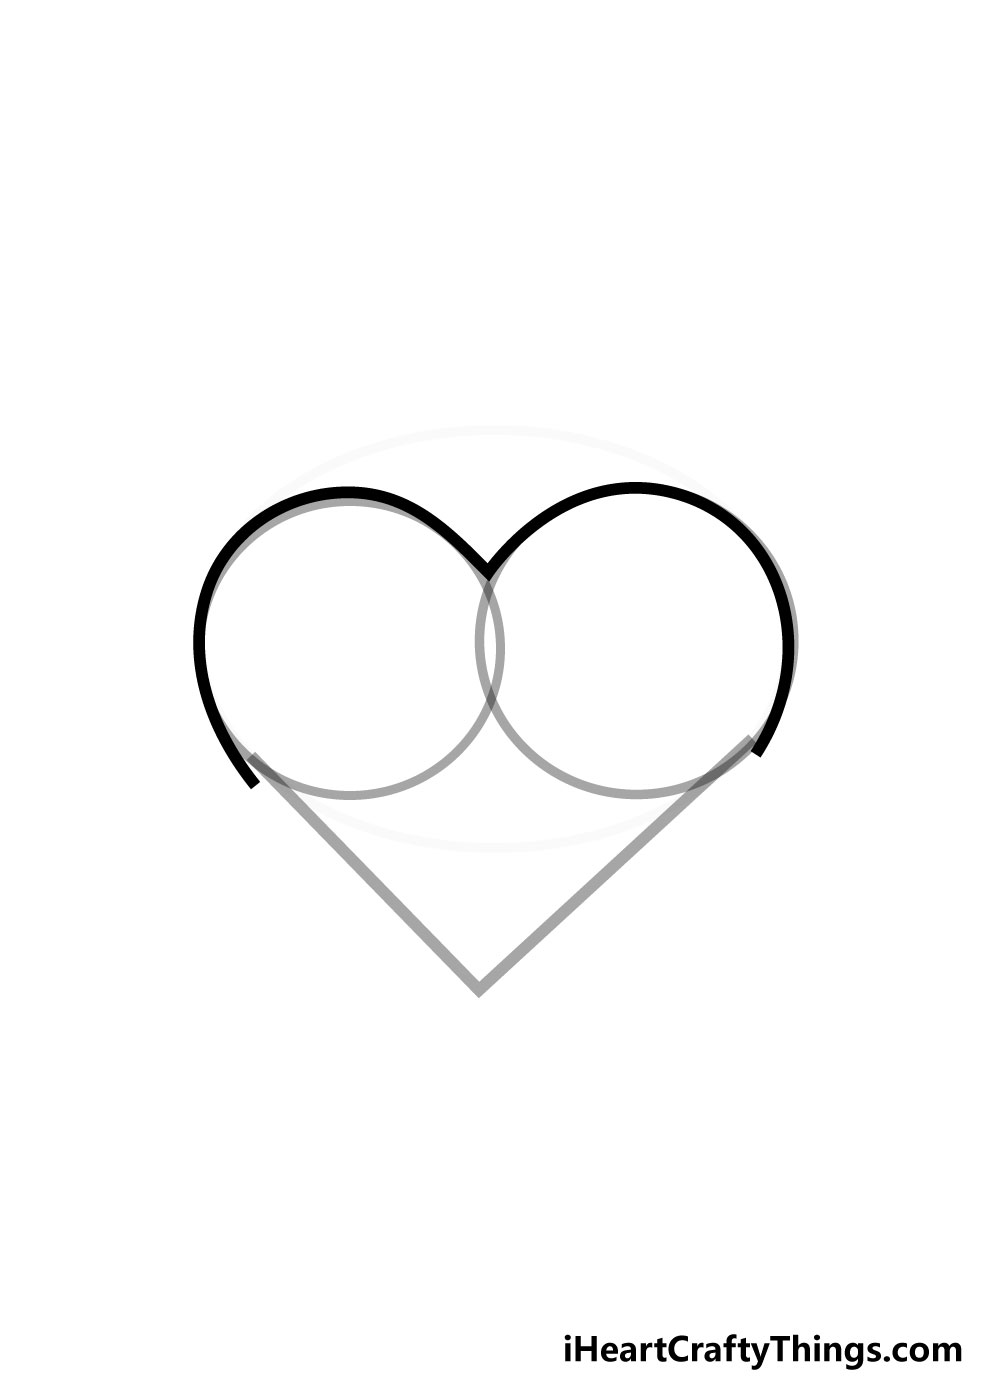 heart drawing step 4